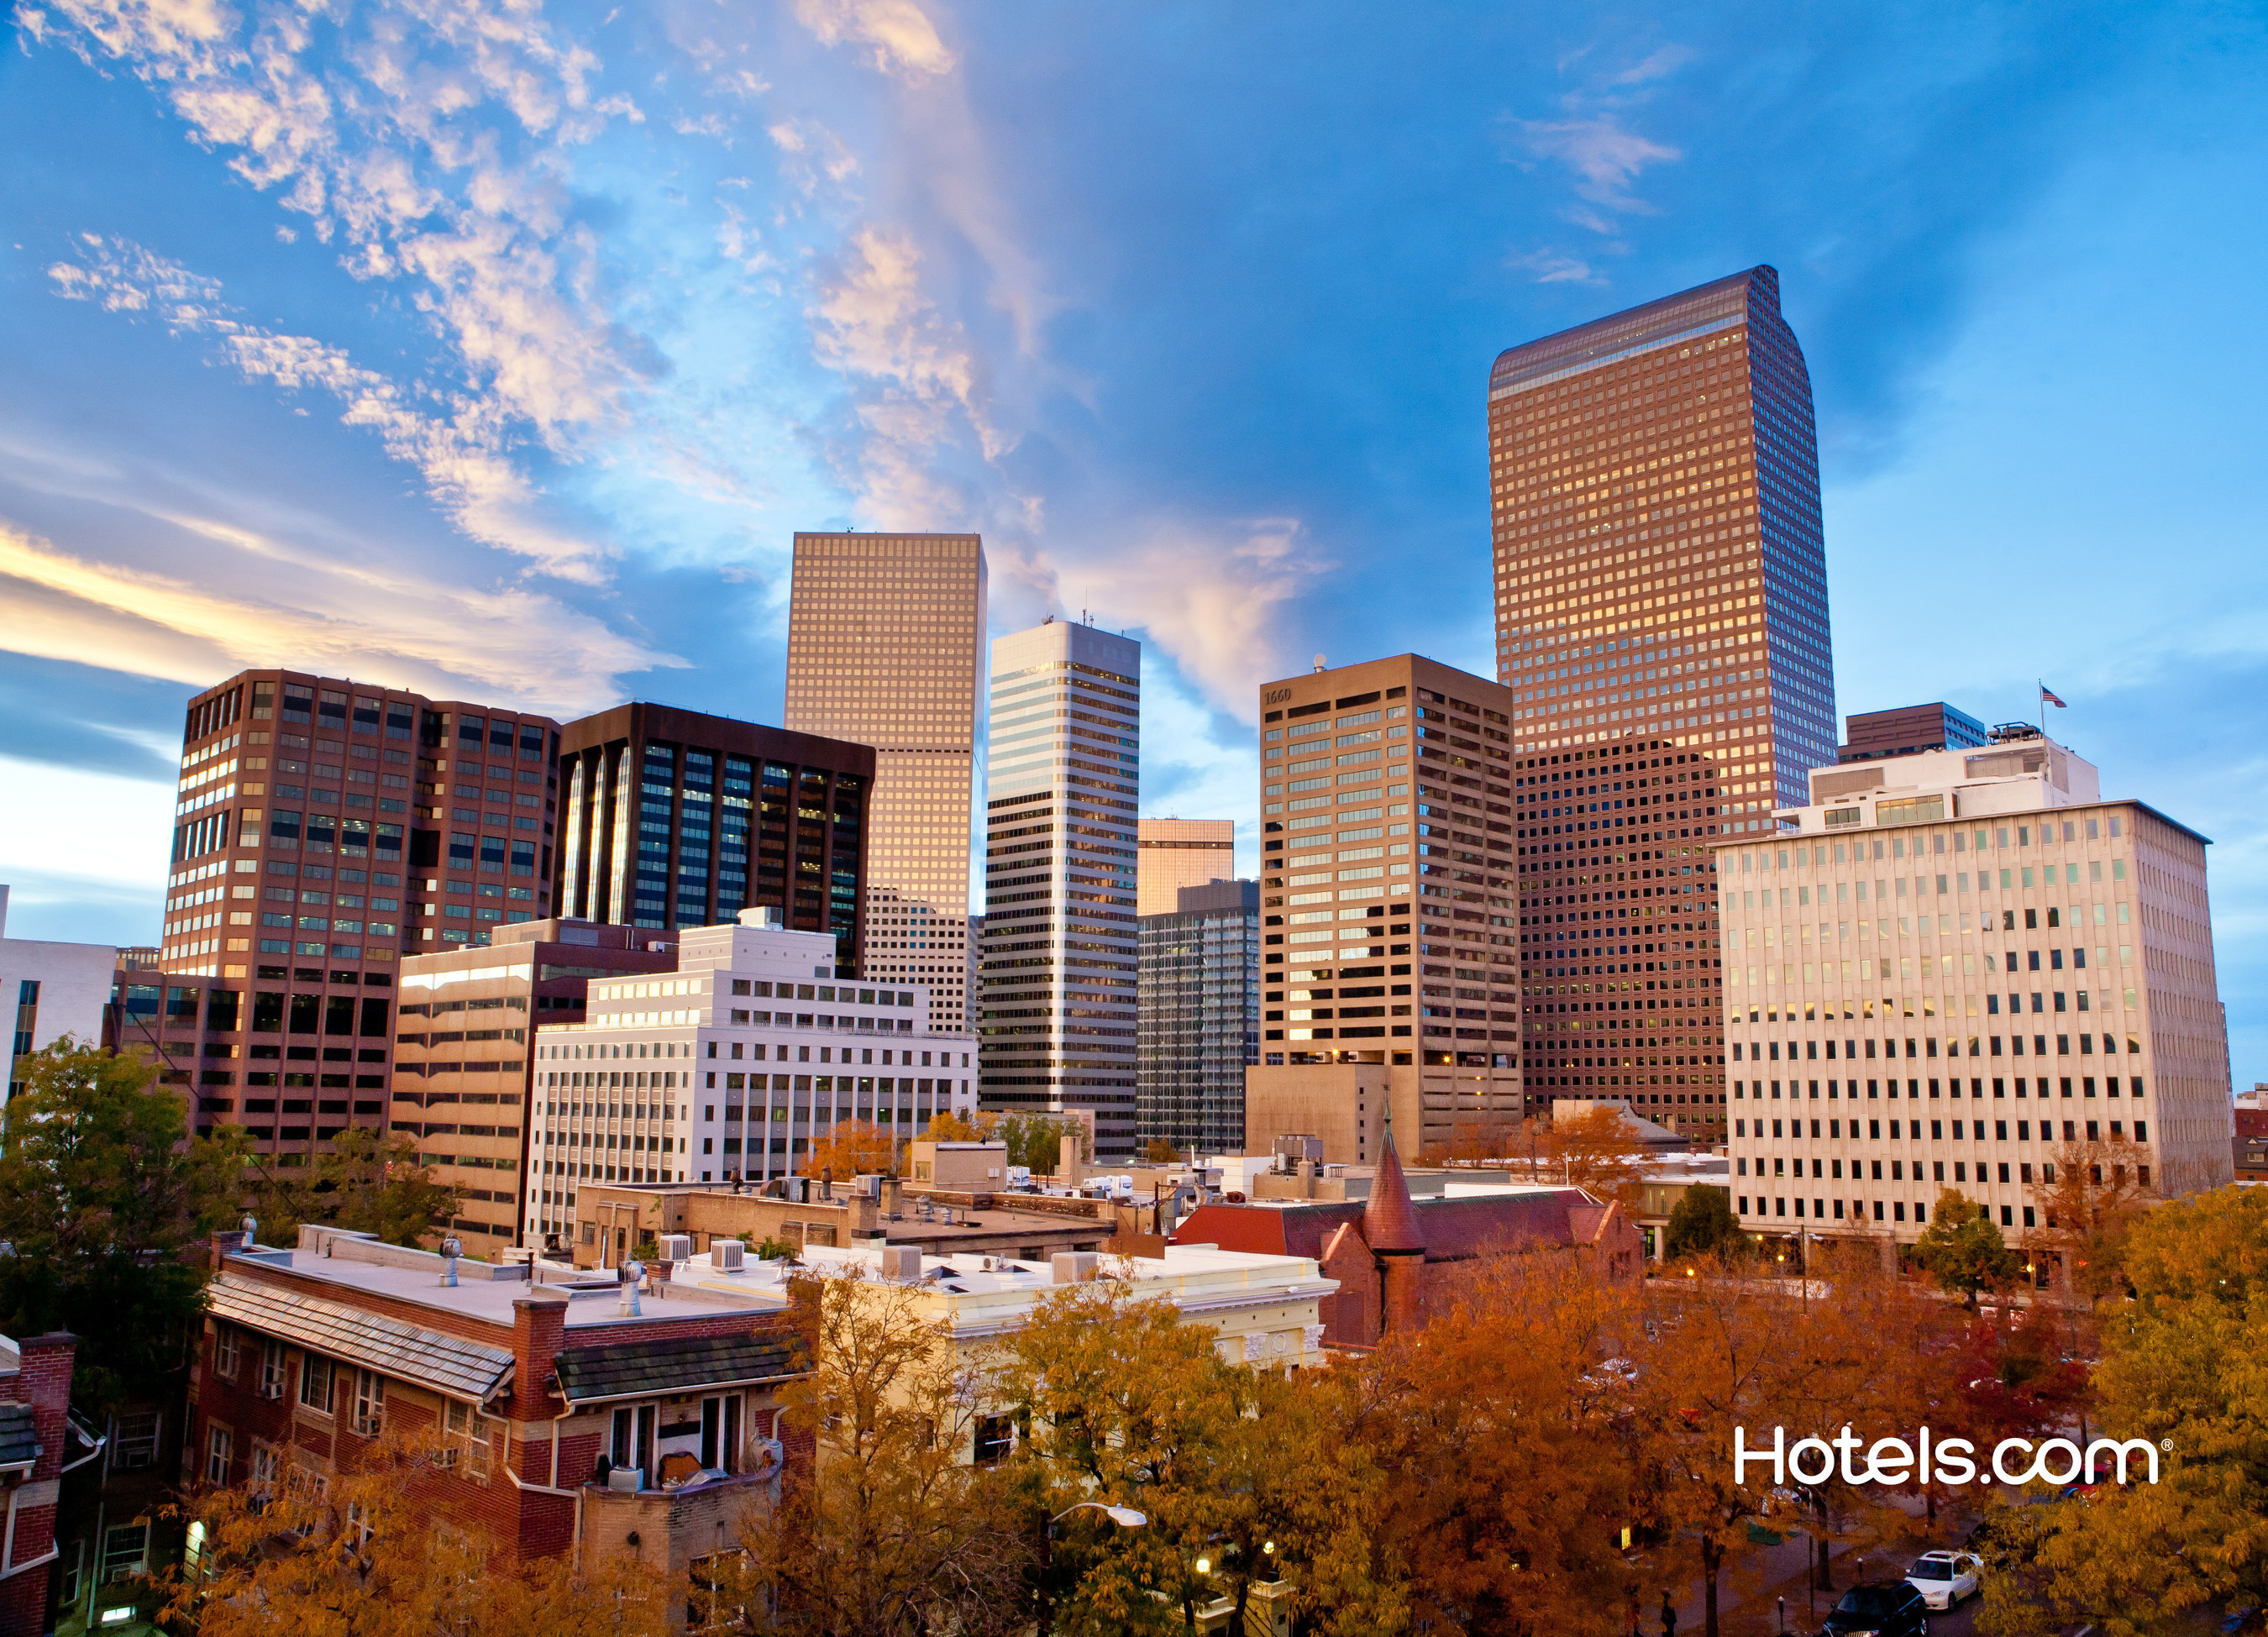 Hotel Price Index From Hotels.com Reveals Denver and Charlotte are gaining popularity domestically, while Mexico surges internationally